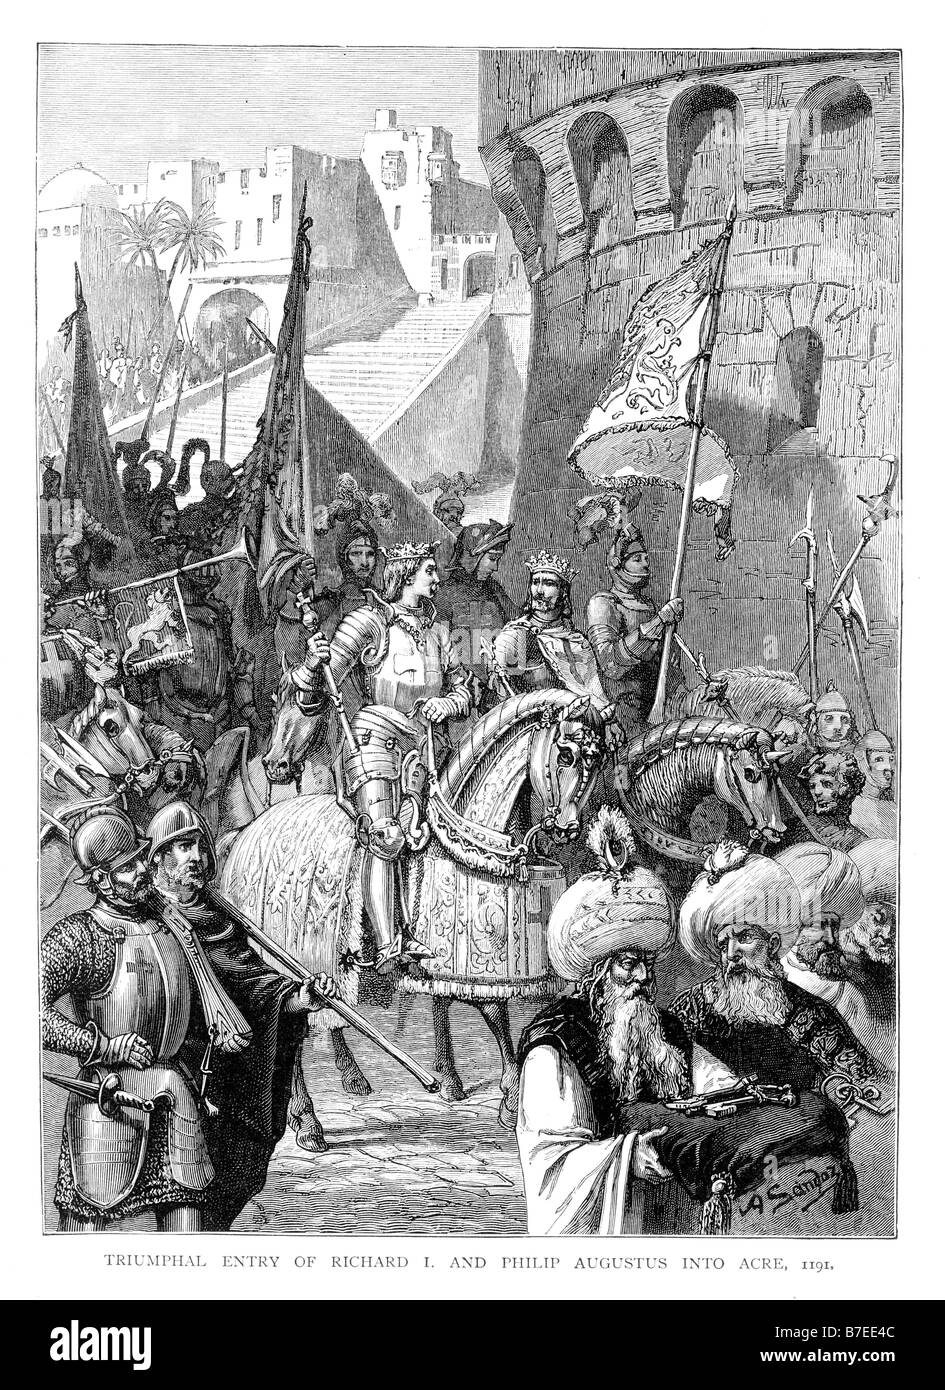 Triumphal Entry of Richard I and Philip Augustus into Acre 1191  Illustration - Stock Image